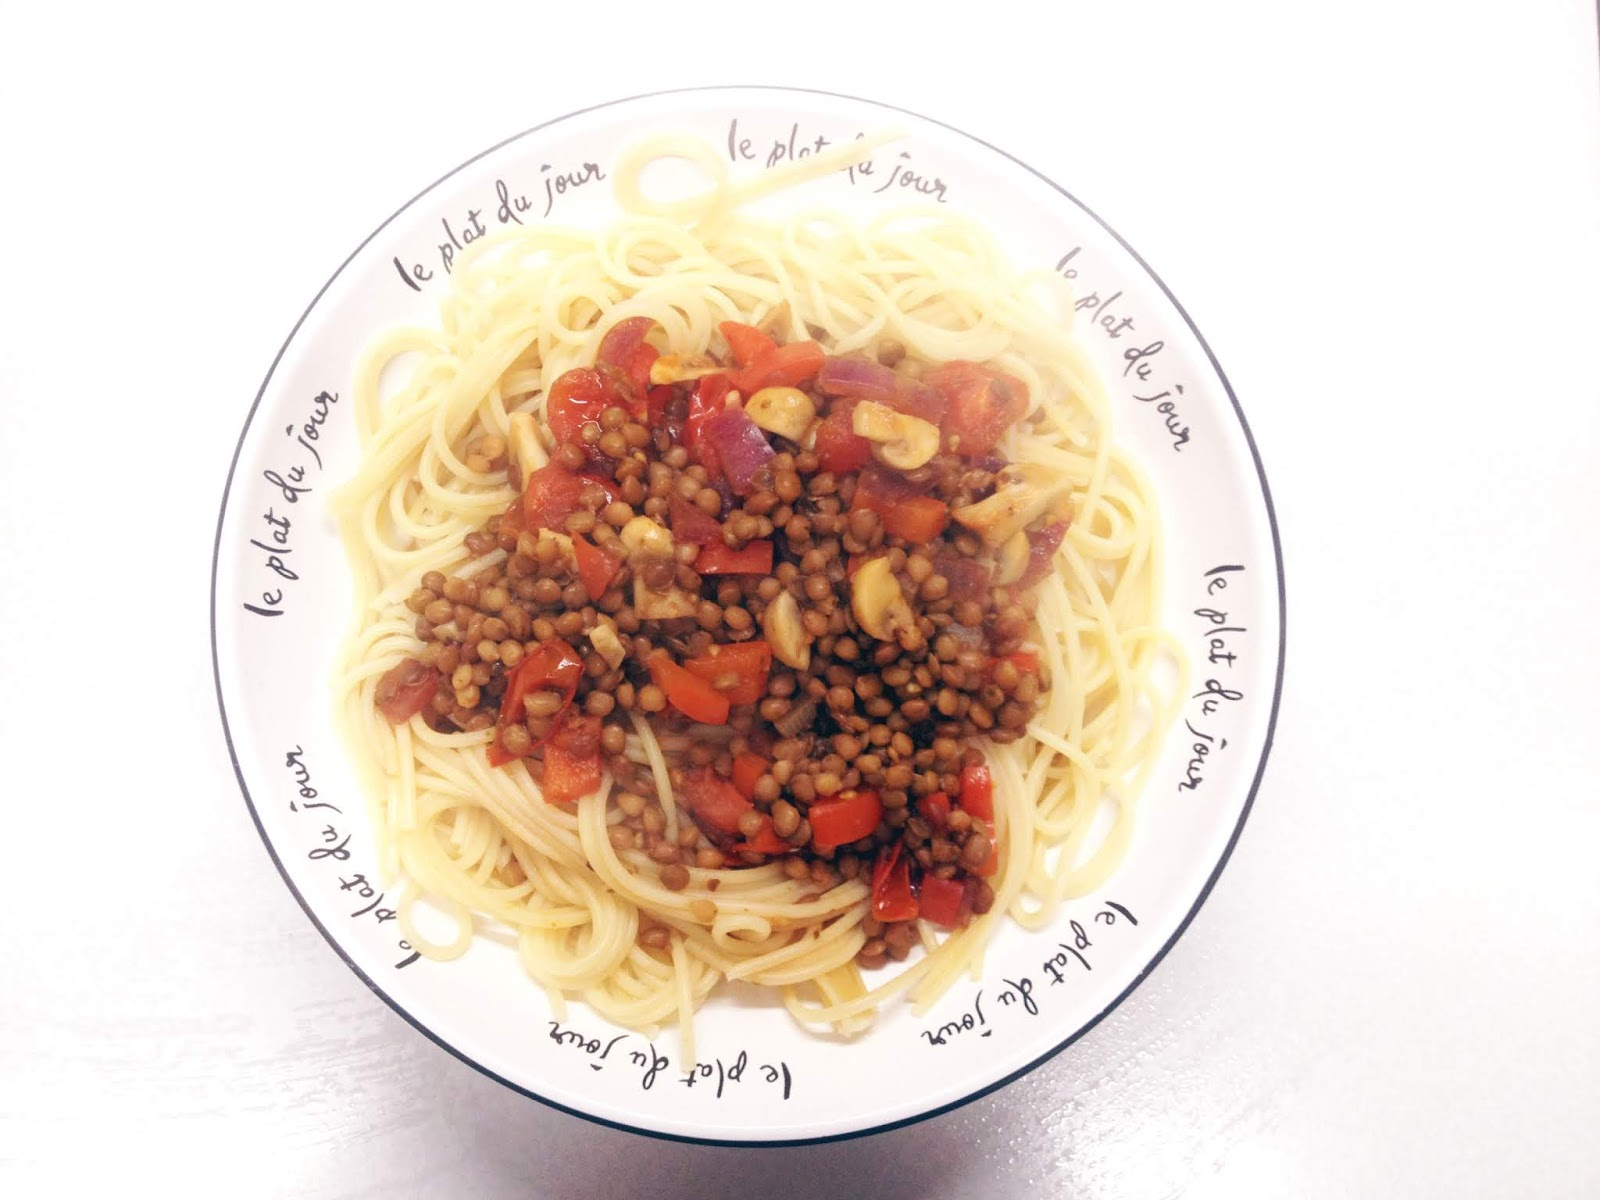 Vegetarian Lentil Bolognese, Vegetarian Bolognese recipes, Food blogs, Student food, Budget recipes, Easy recipes,